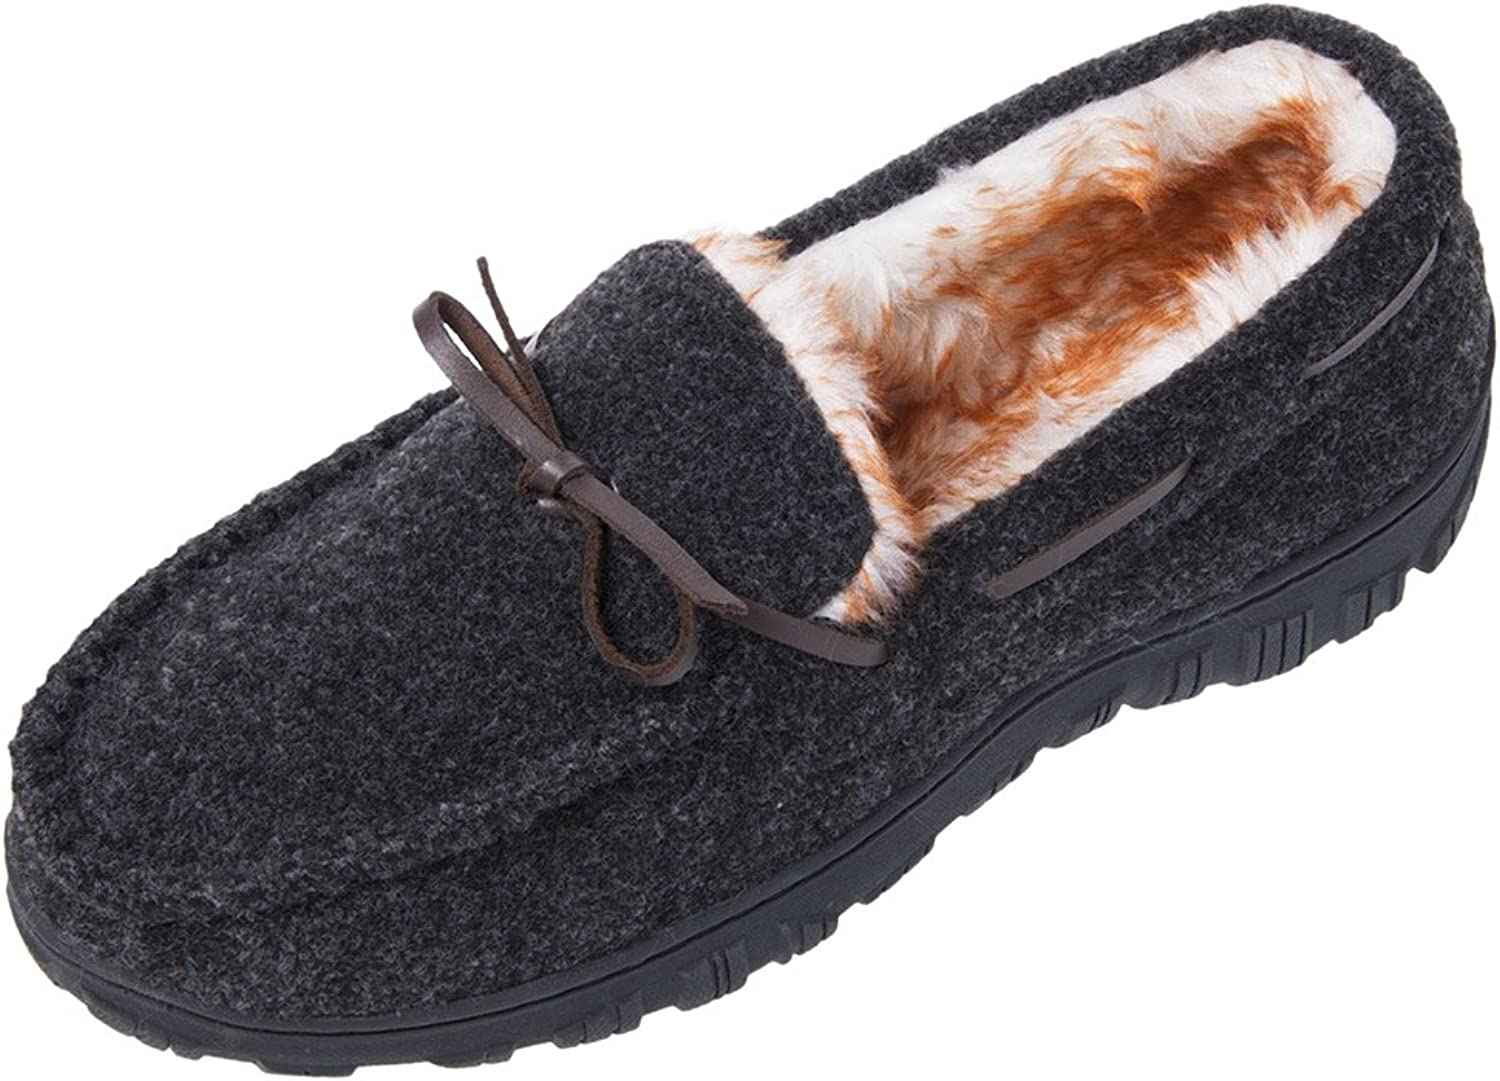 MIXIN Men's Casual Felt Vamp Faux Fur Lined Rubber Sole Indoor Outdoor Moccasin Flat Slipper shoes